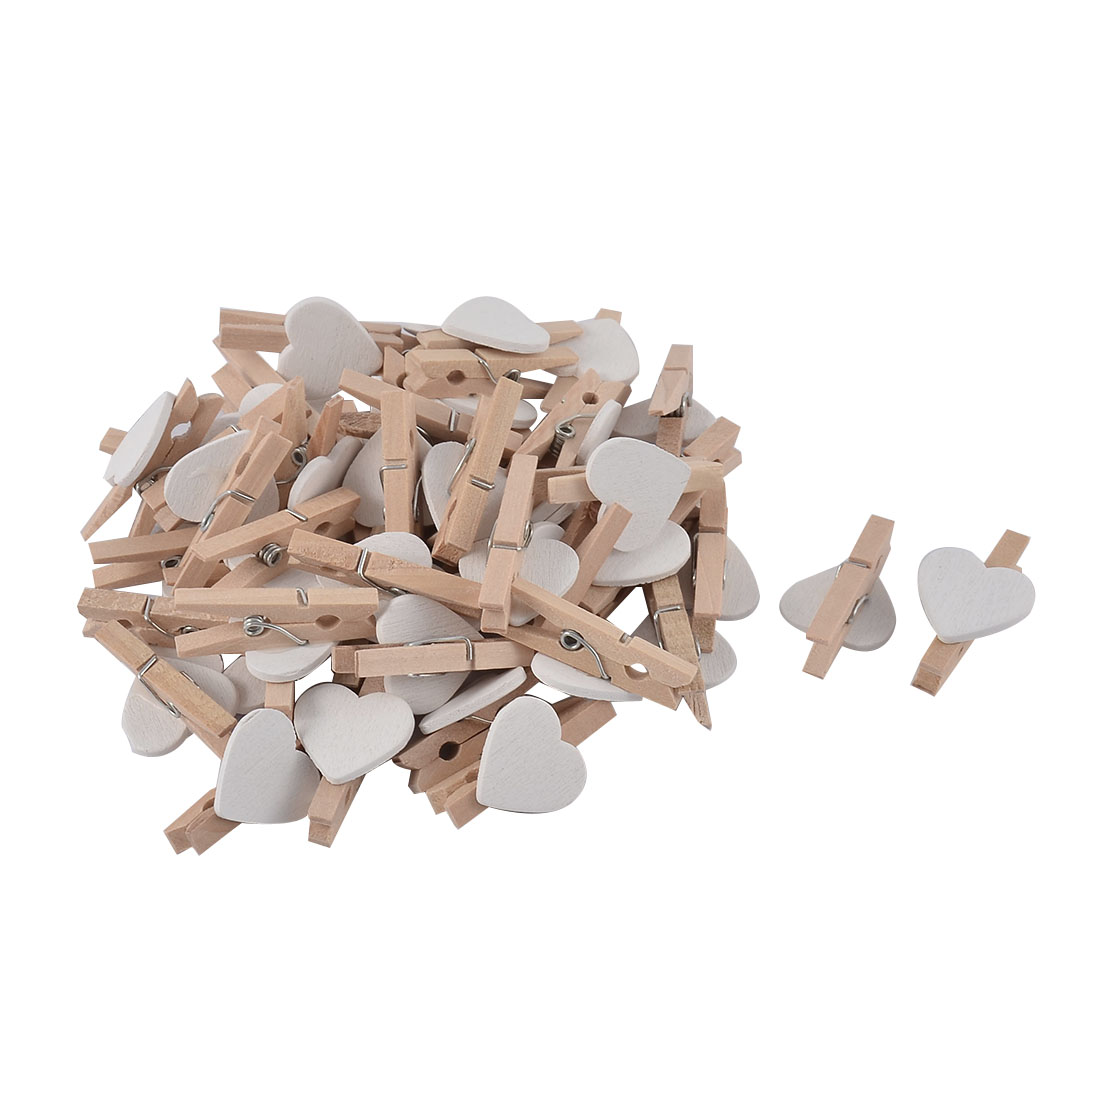 Card Photo Clothes DIY Heart Shape Crafts Mini Wooden Clip Pegs White 50pcs